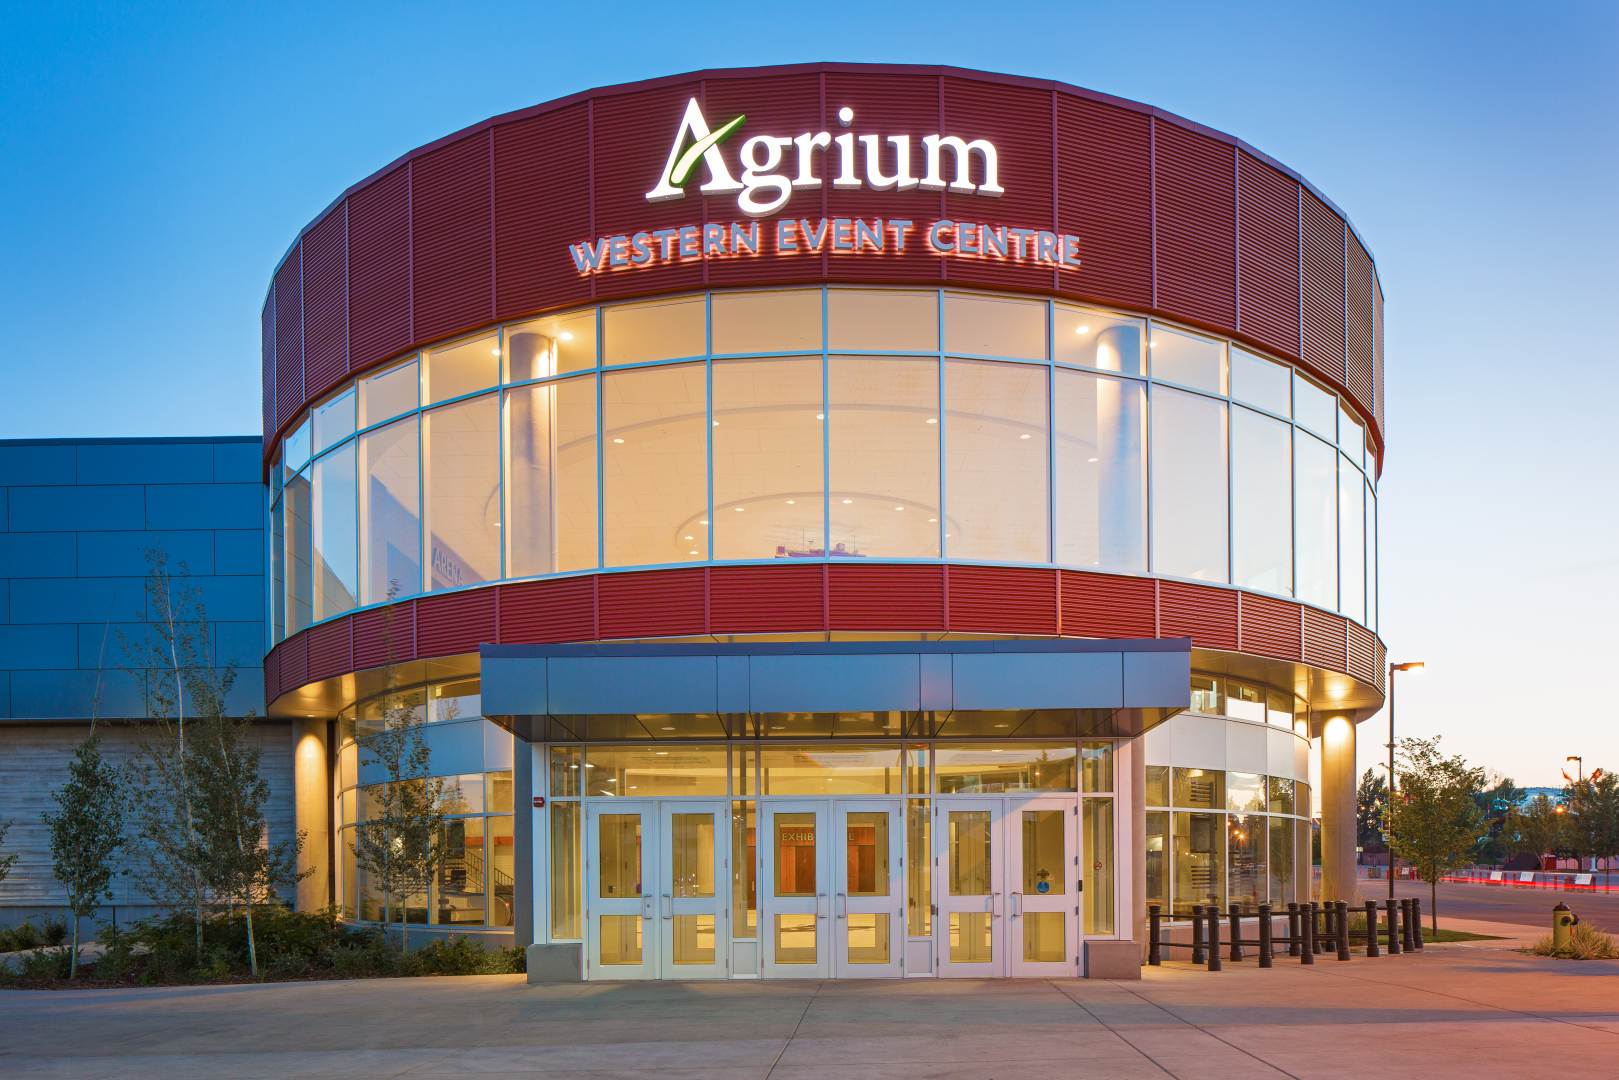 Calgary Stampede - Nutrien Western Event Centre